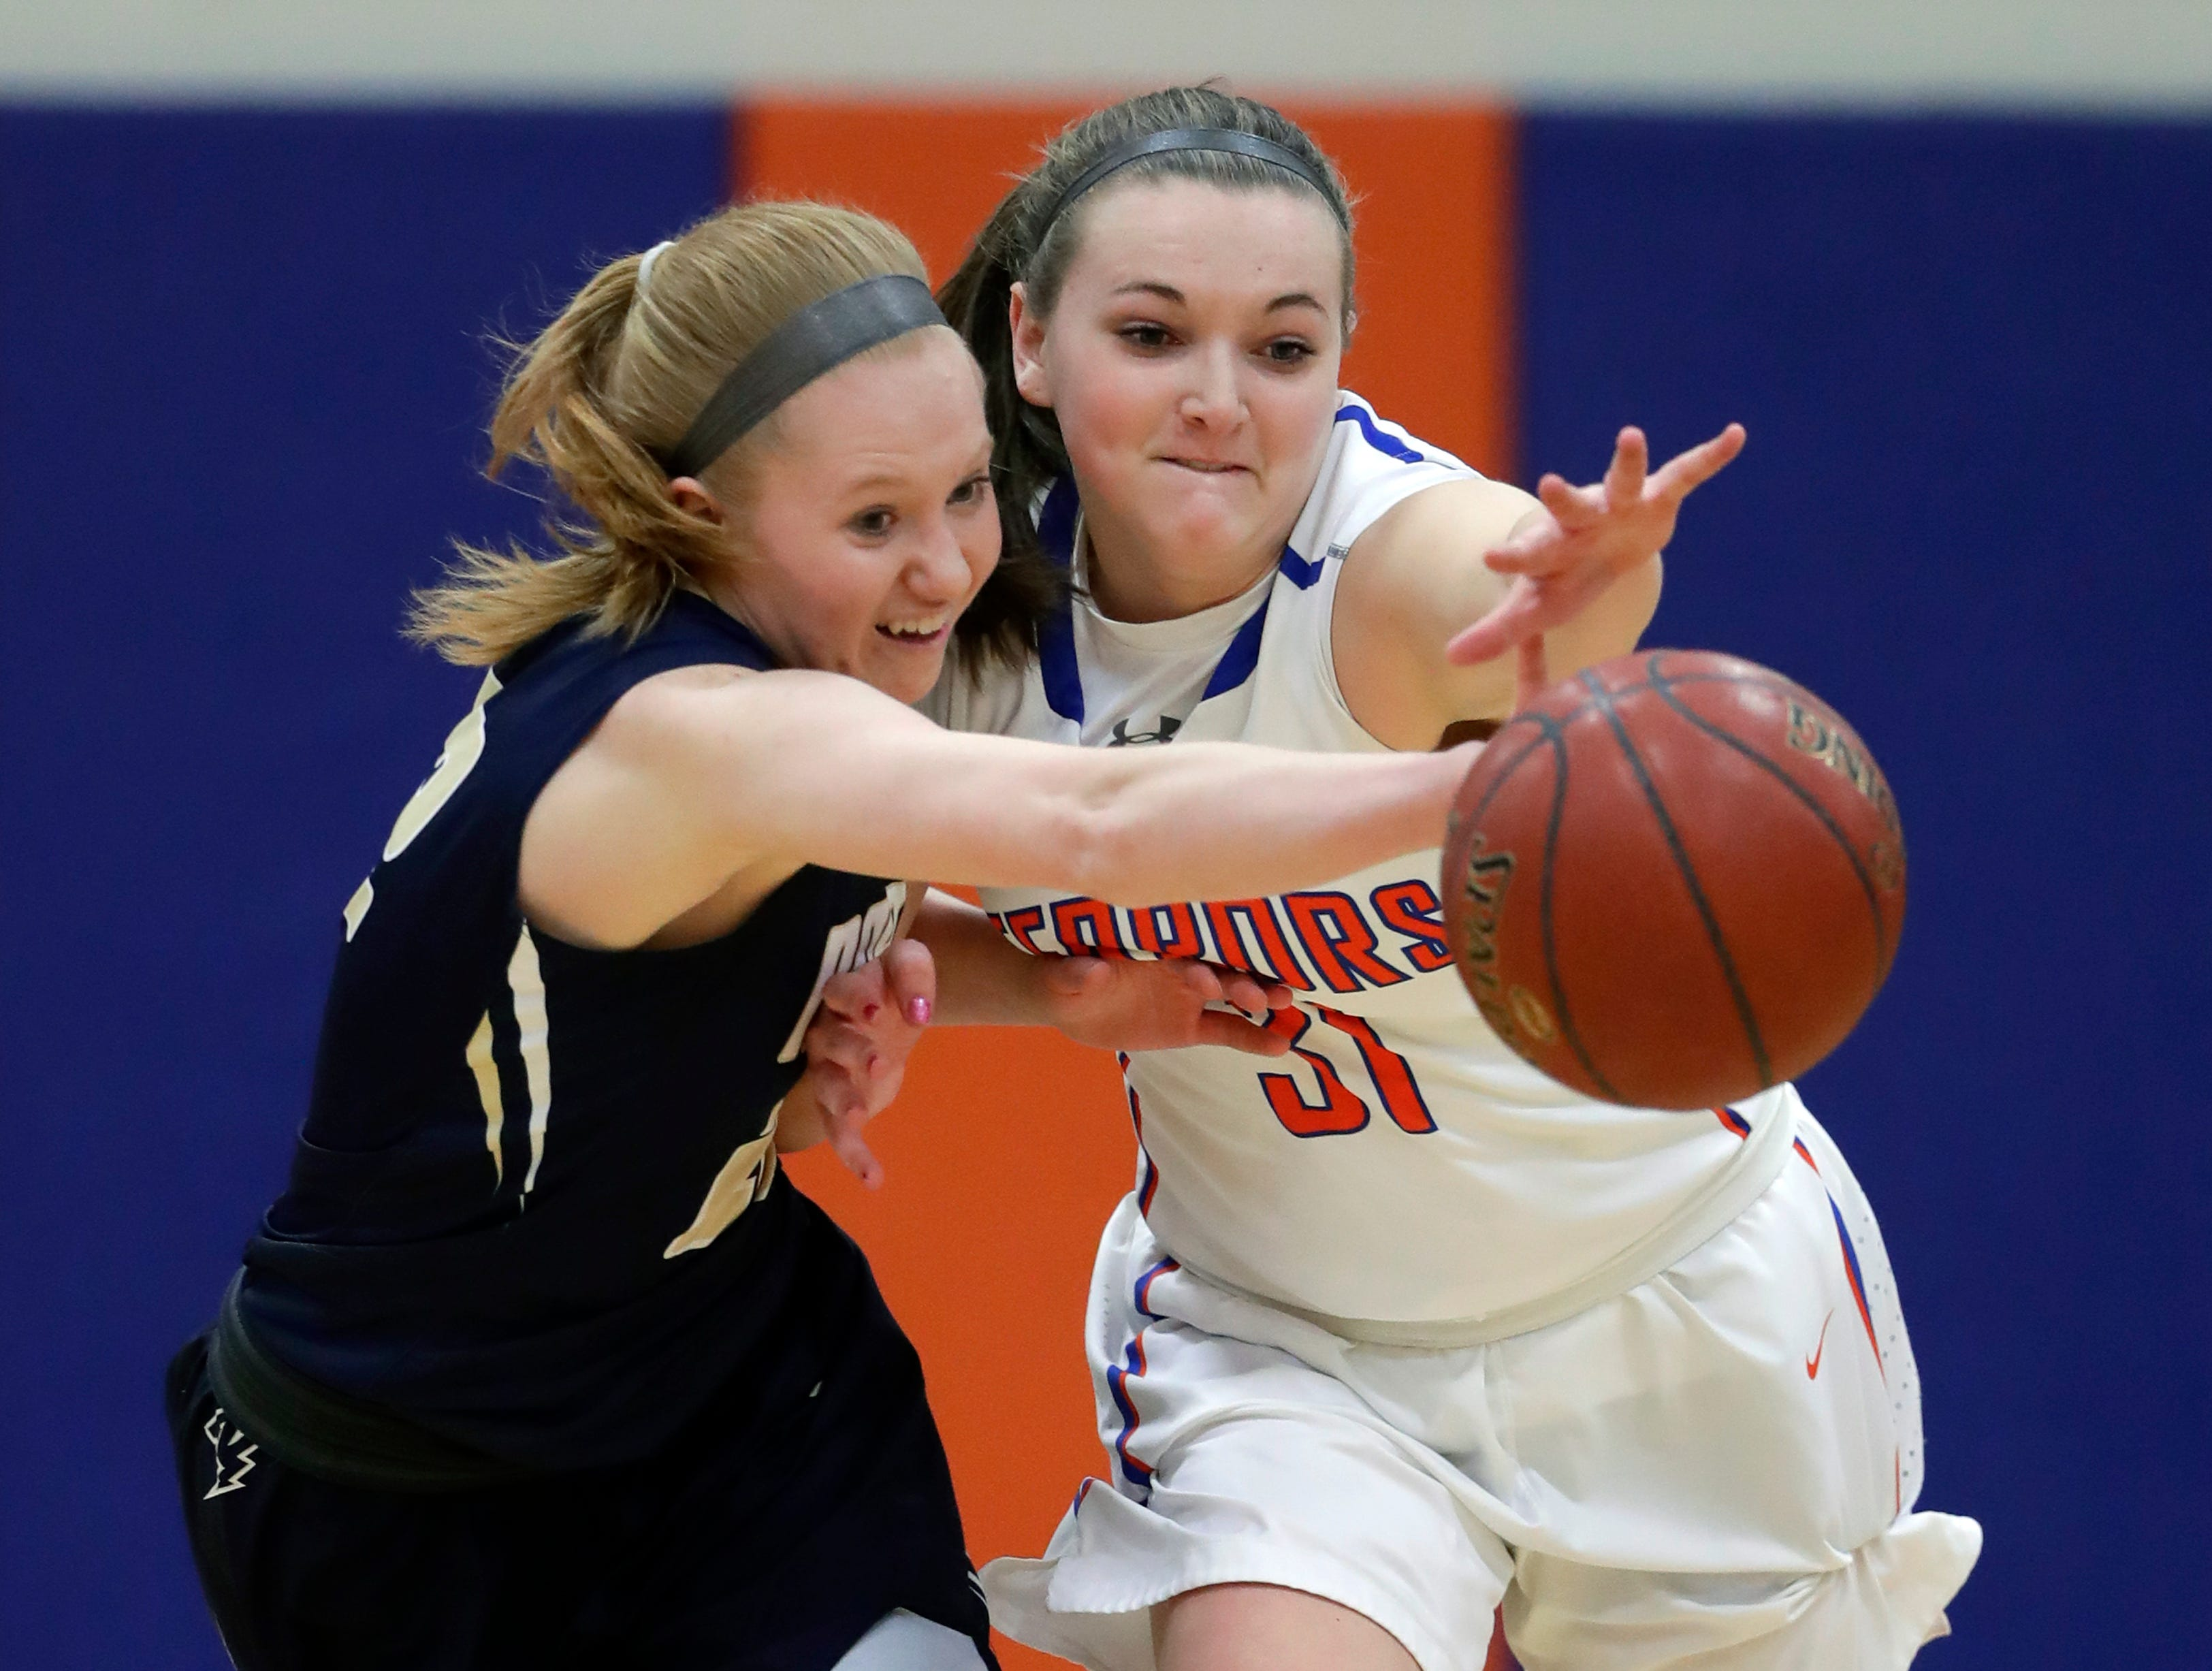 Appleton North High School's Kayla Schroeder, left, battles for a loose ball against Appleton West High School's Christy Fortune during their girls basketball game Friday, January 25, 2019, at Appleton West High School in Appleton, Wis. 